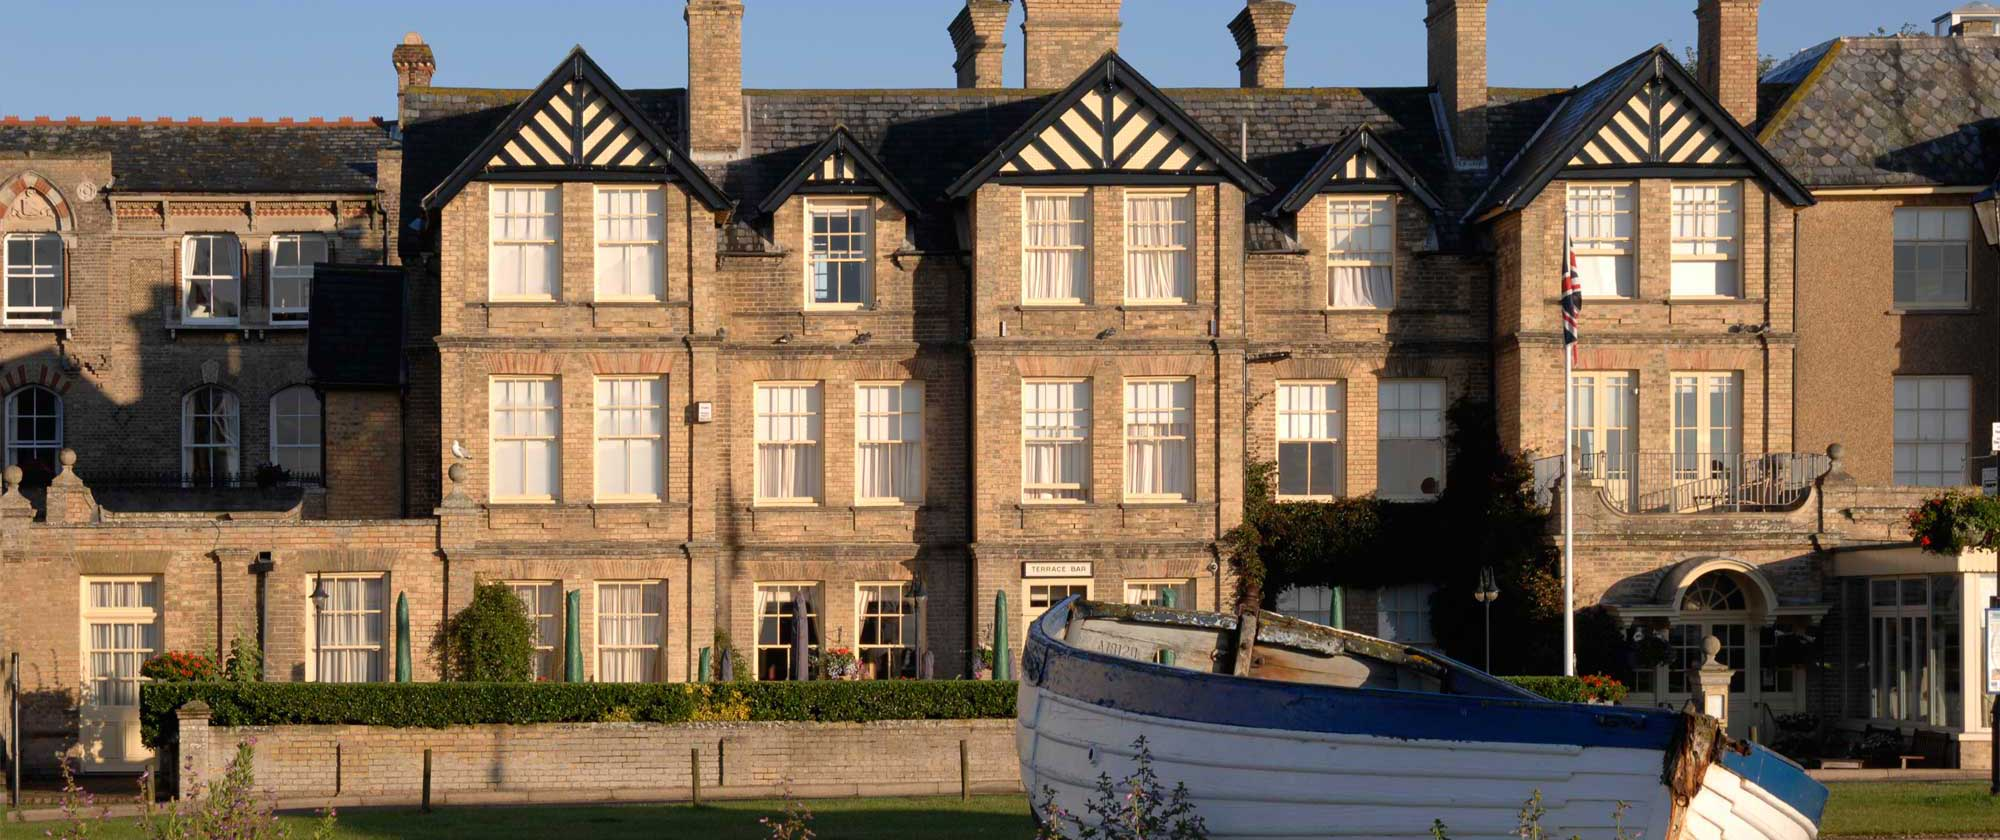 The Wentworth Hotel on the Suffolk coast